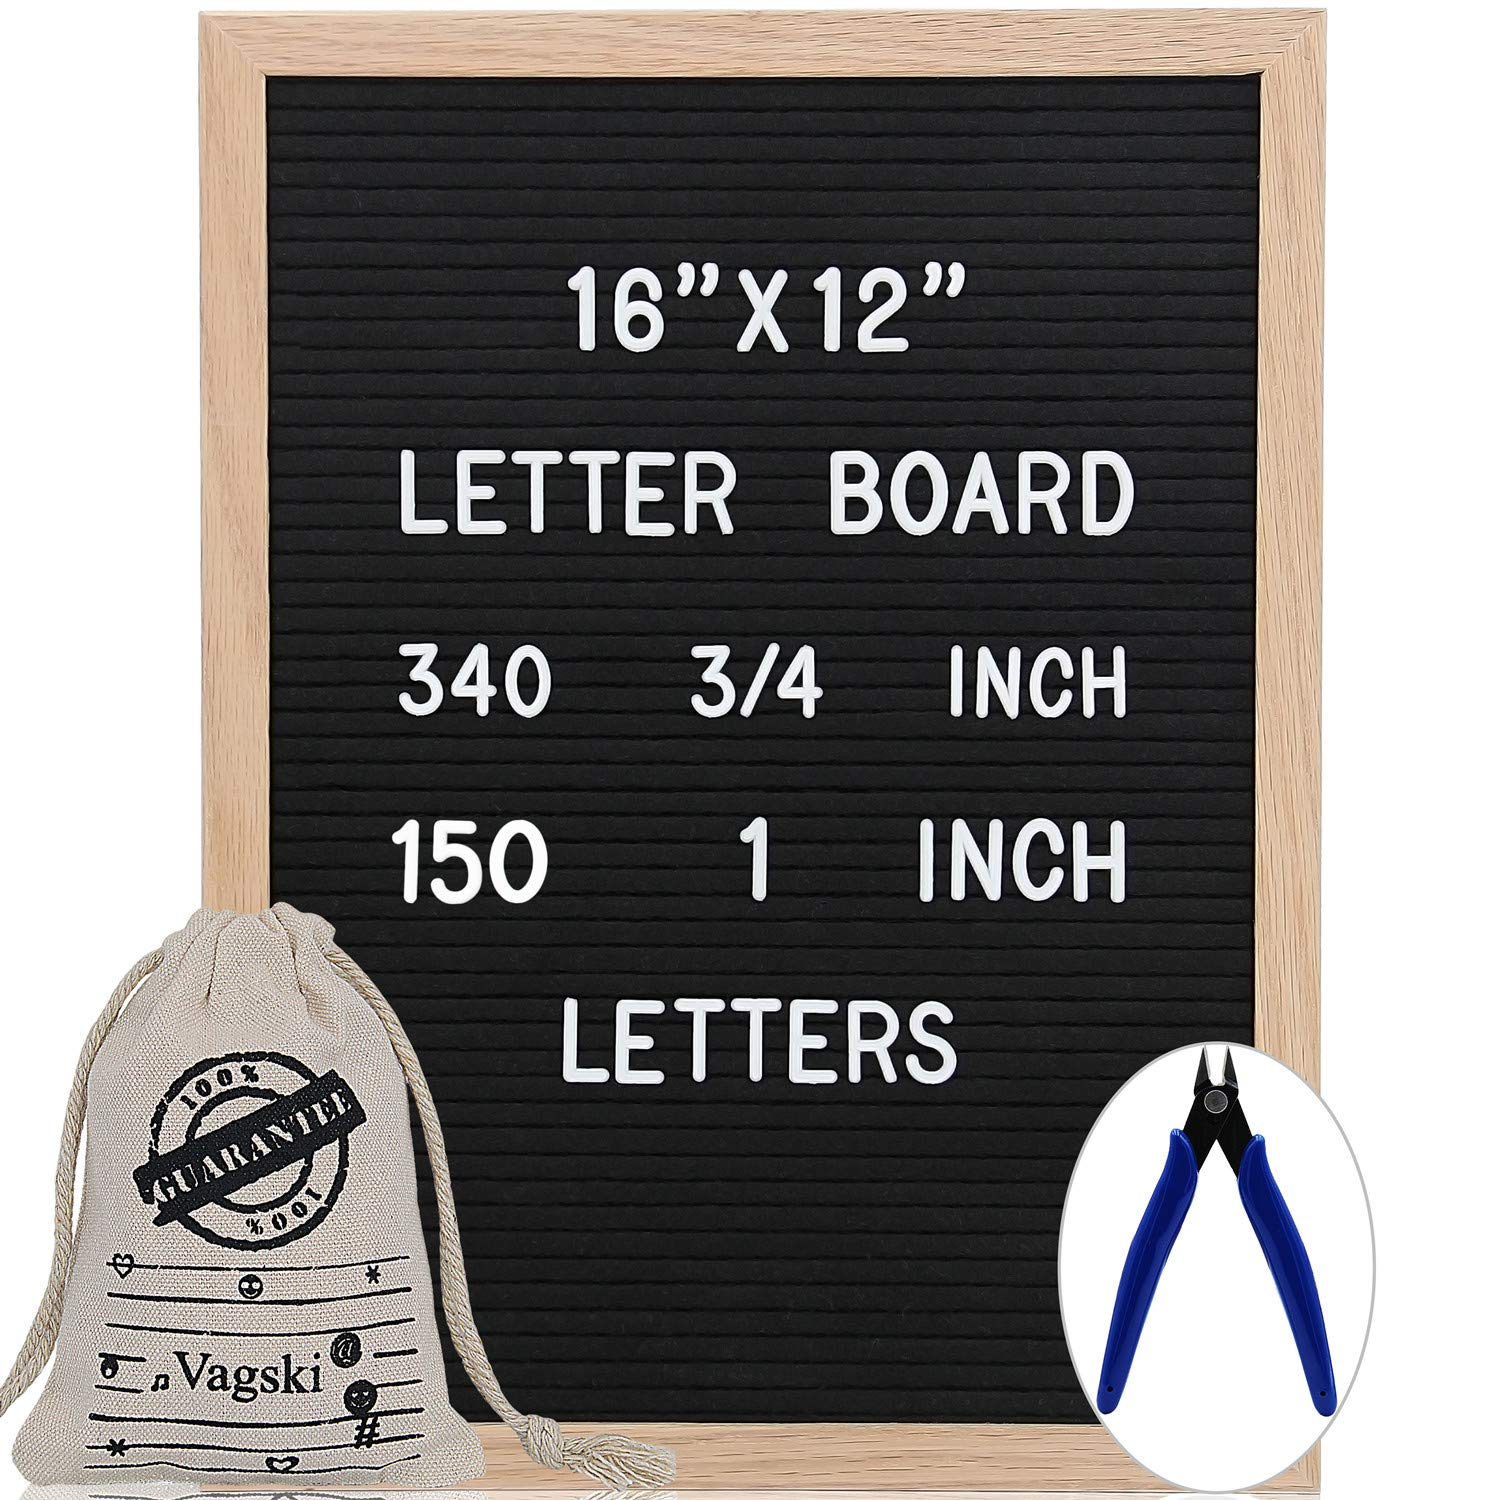 Letter Board 12 x 16 Inches - Vagski Black Felt Letter Board with 490 Letters Numbers & Symbols (150 1'' + 340 ¾''), Changeable Message Board Sign with Oak Wood Frame, Letter Pouch & Scissors VAG047